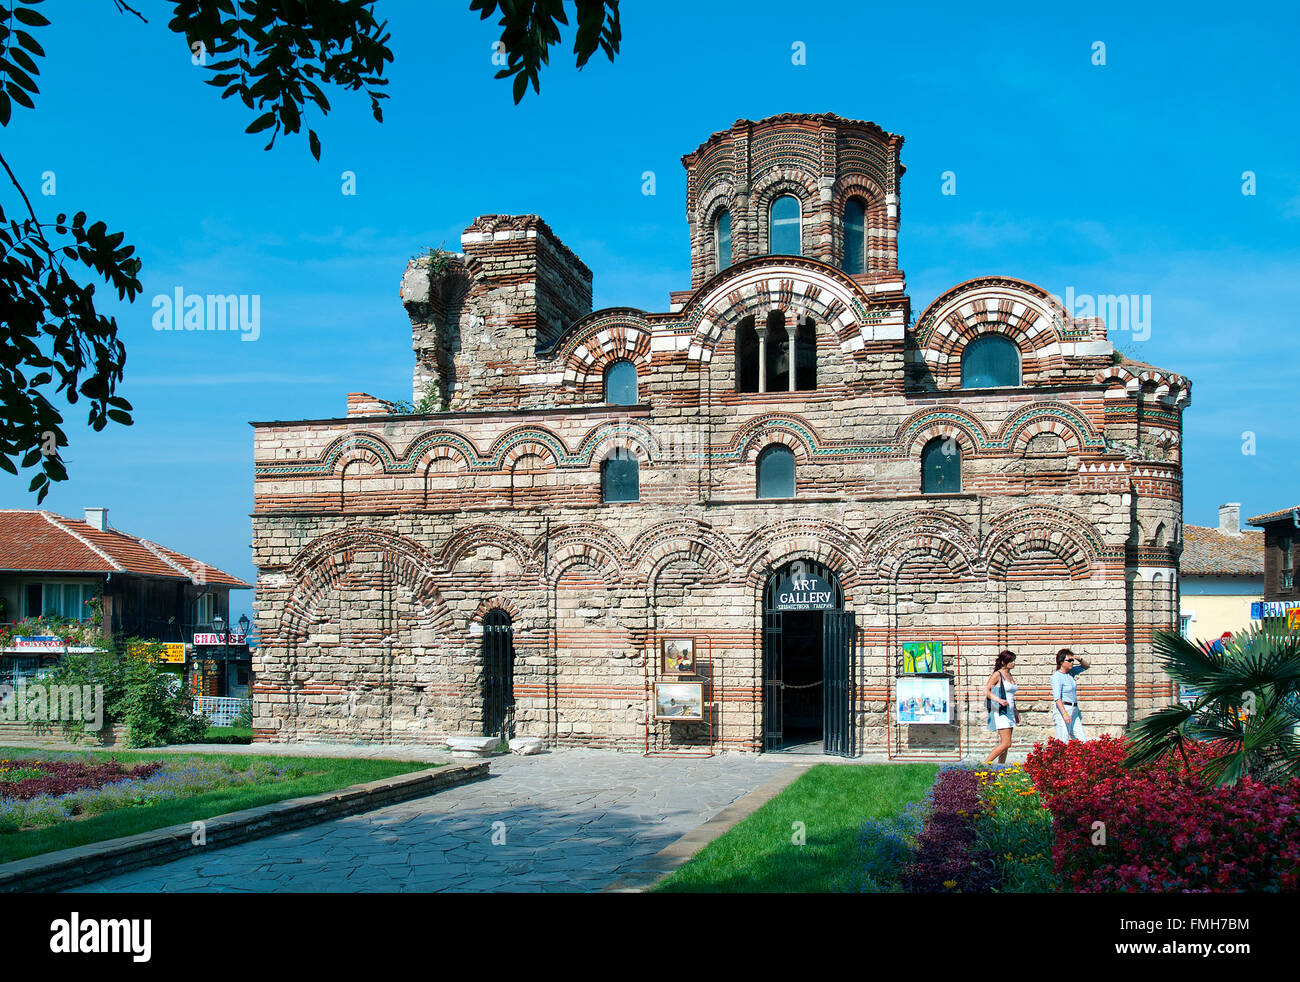 Delapidated Christ Pantocrator Church now used as commercial art gallery, Nessebar, Black Sea, Bulgaria - Stock Image